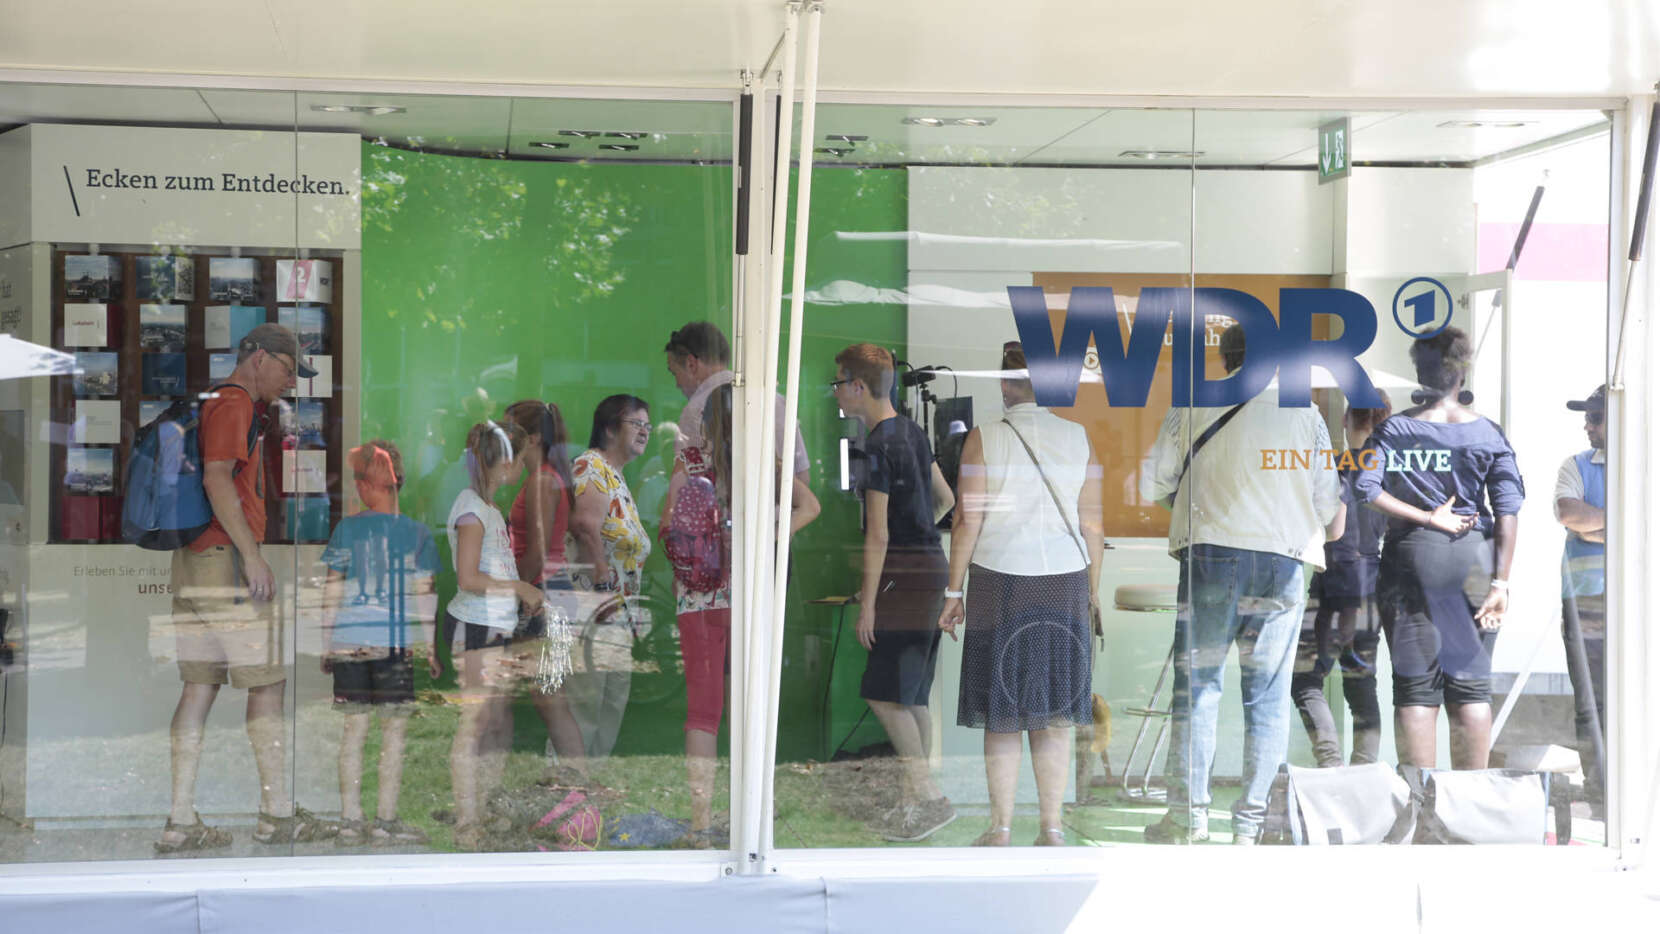 WDR-live-container-1660x934.jpg